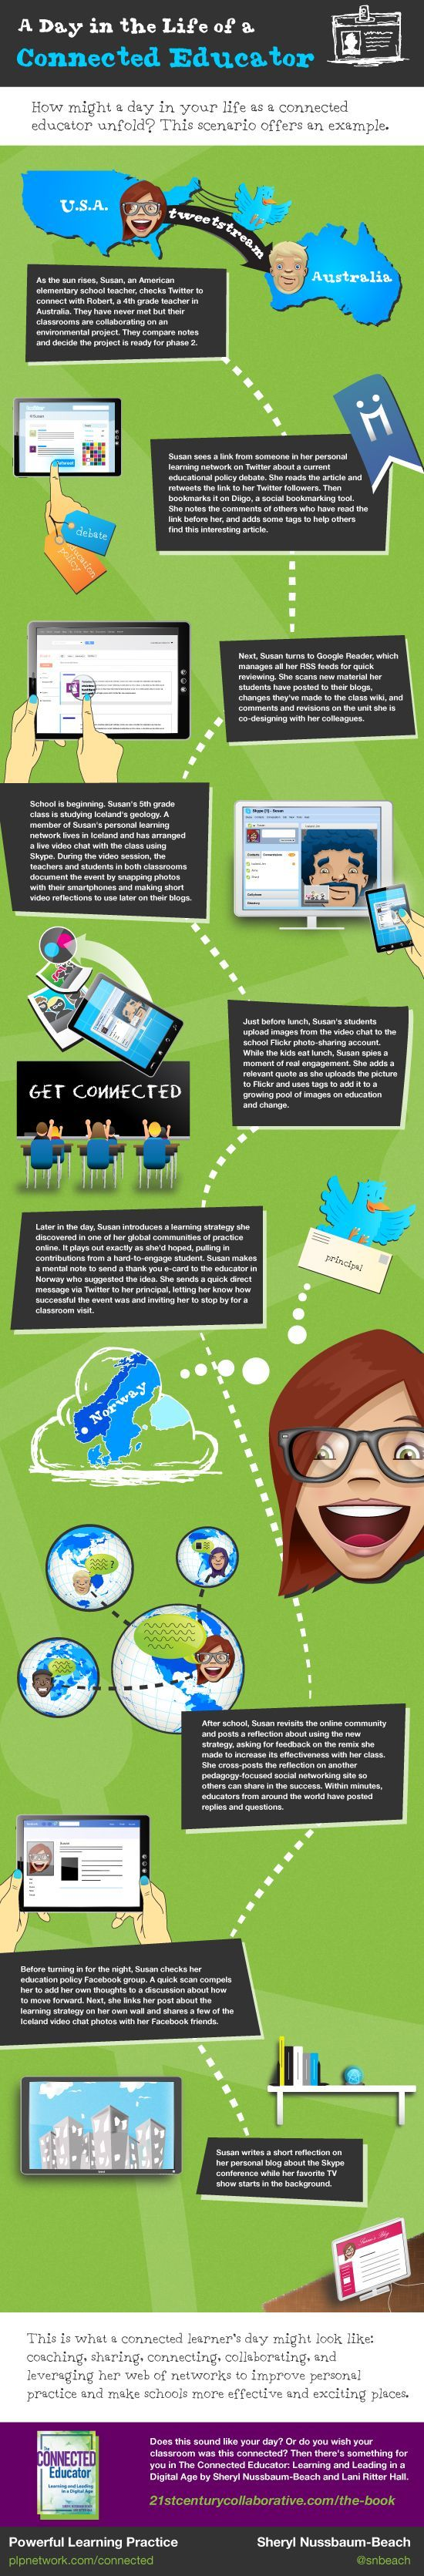 Educational infographic : Infographic: A day in the life of a connected educator using social media in 2